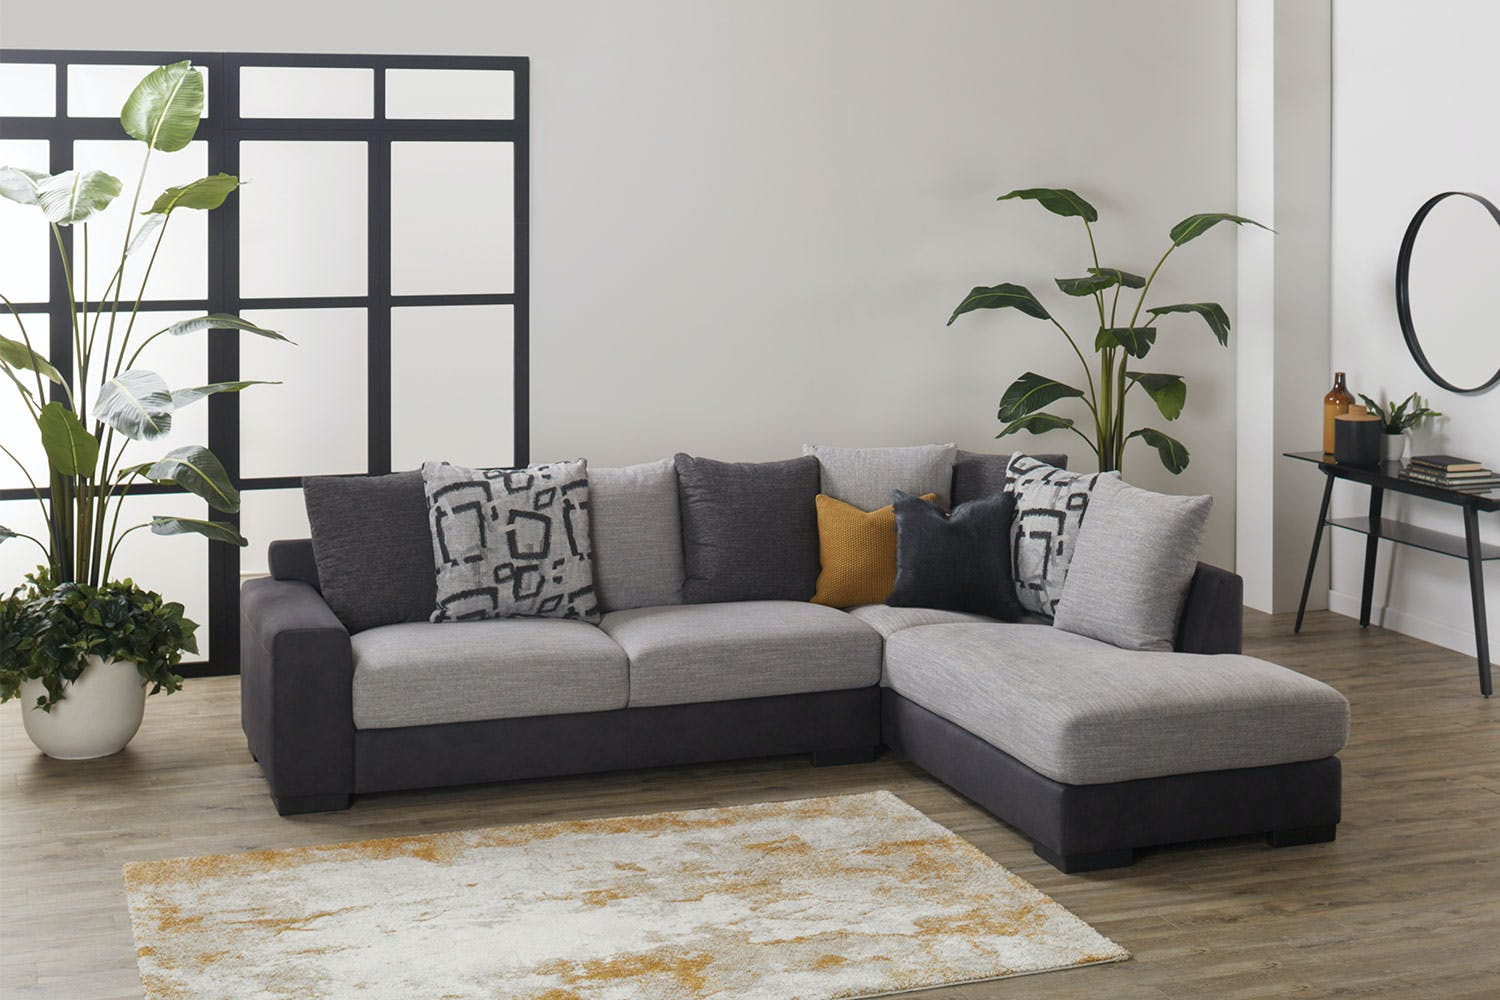 Houston 3 Seater Conner Chaise Sofa | Harvey Norman New Zealand